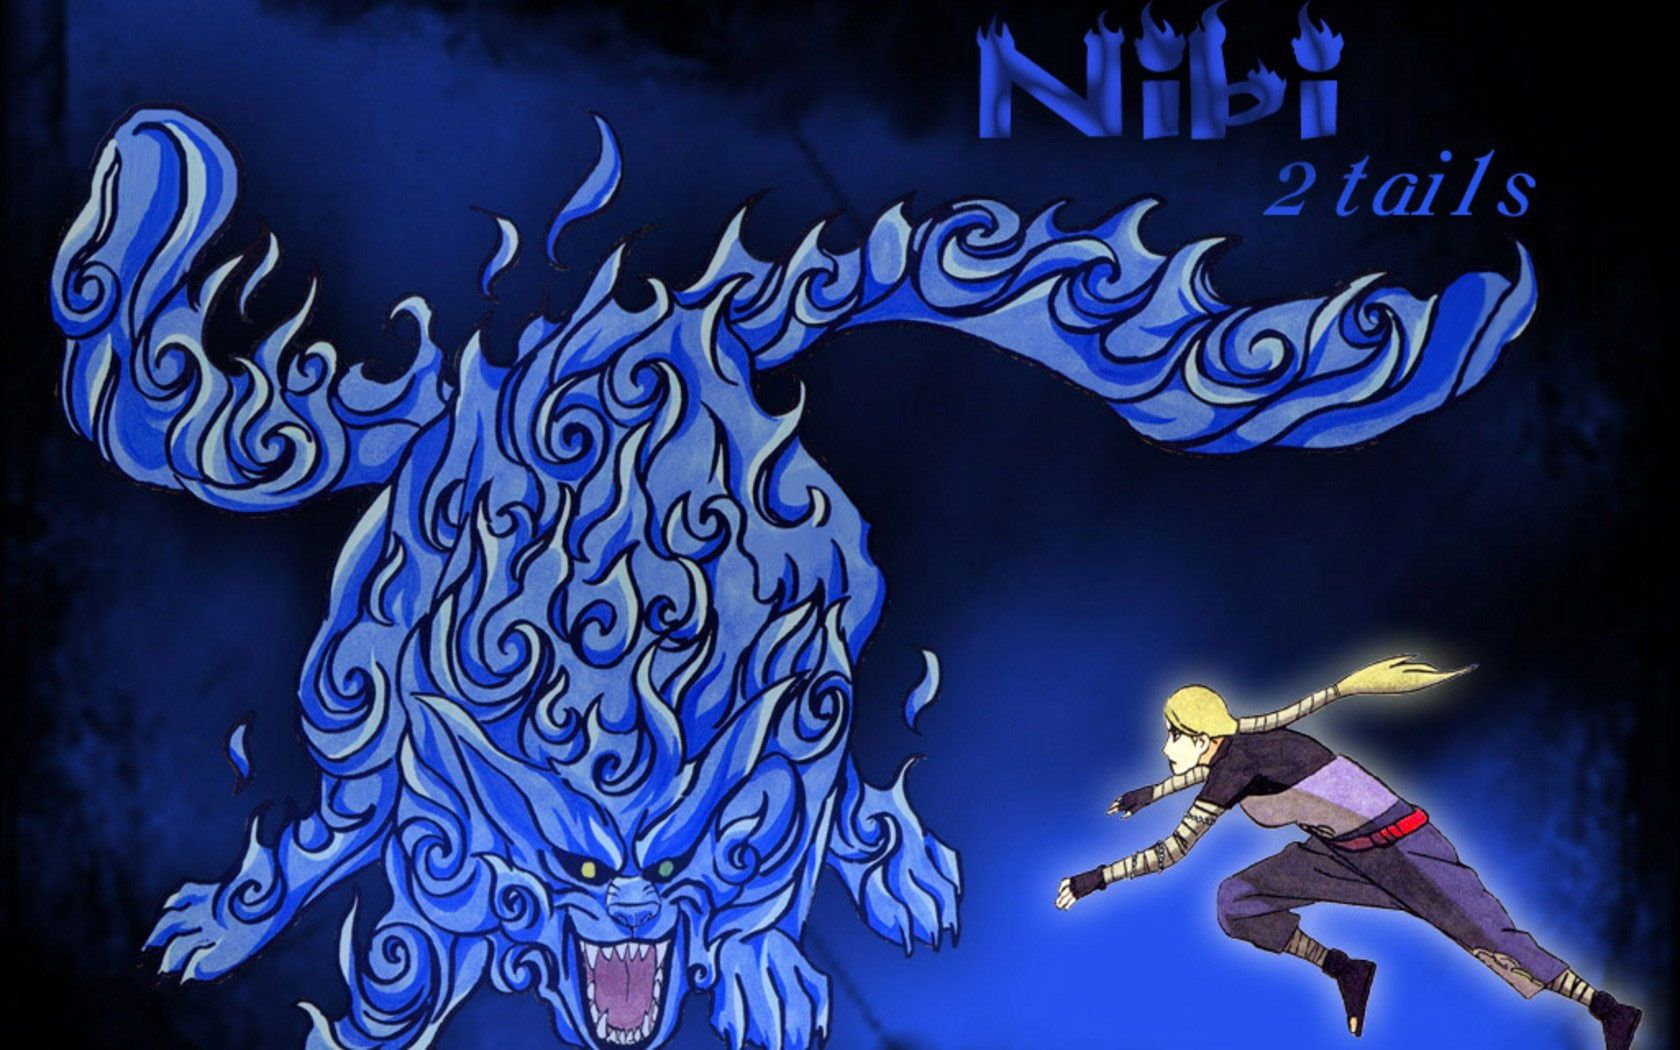 Naruto Tailed Beasts The Two Tails Matatabi Its Most Recent Jinchriki Is Yugito Nii